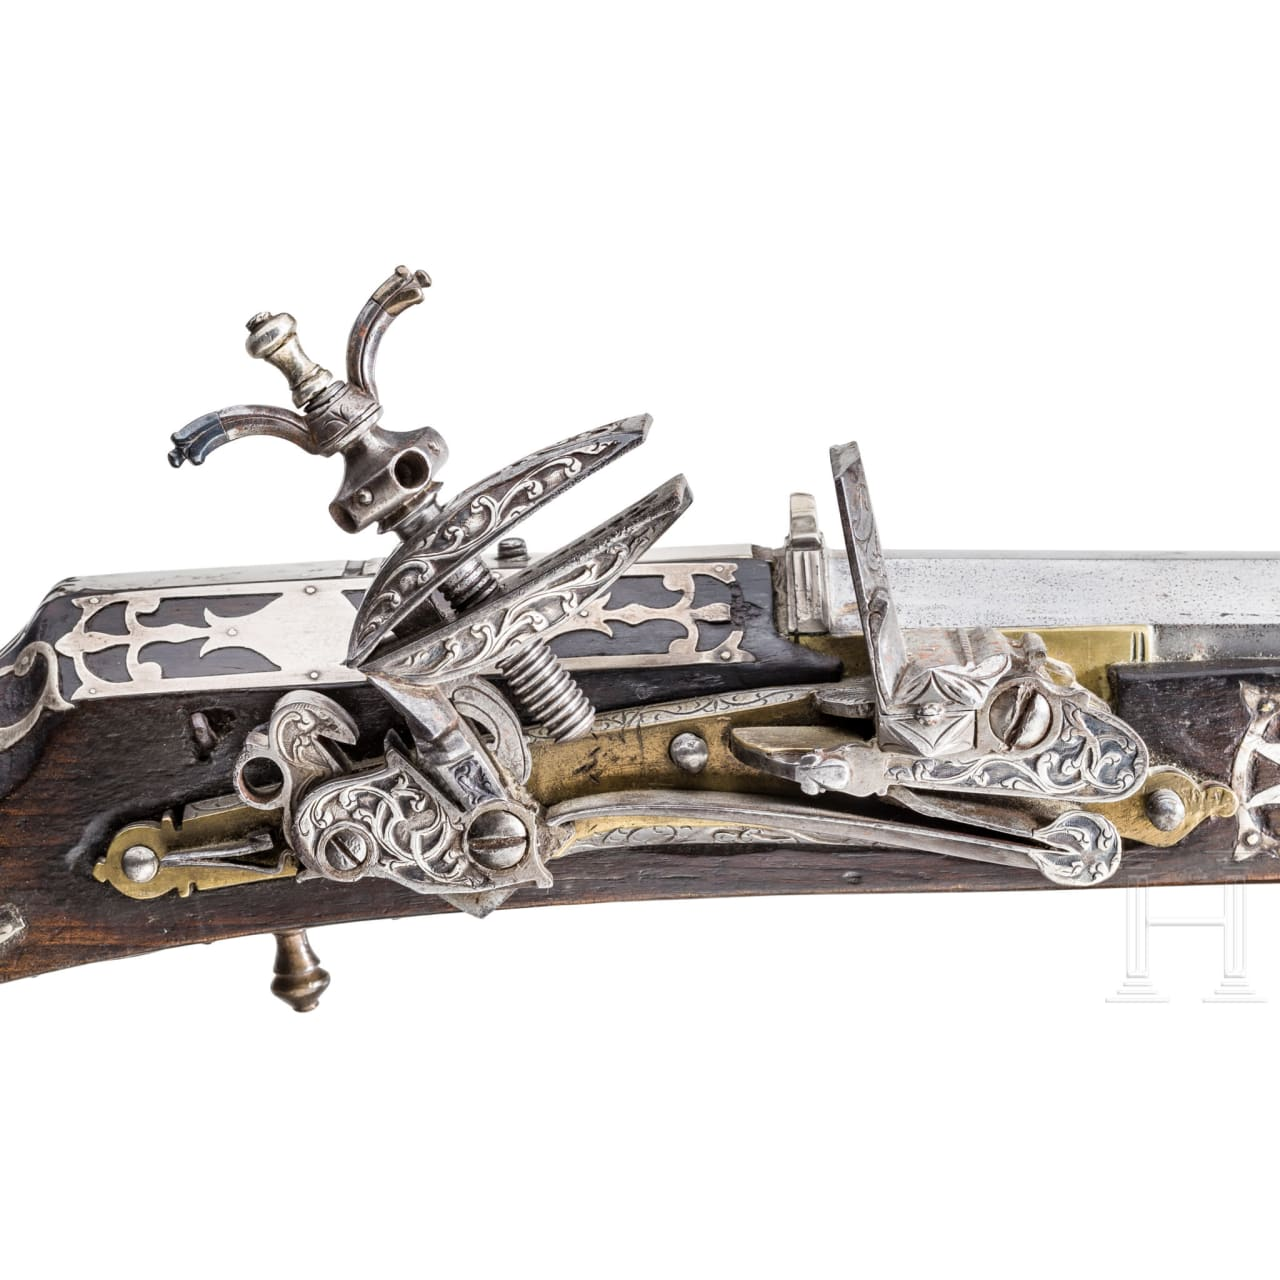 A Tunisian silver-mounted miquelet rifle, dated 1824